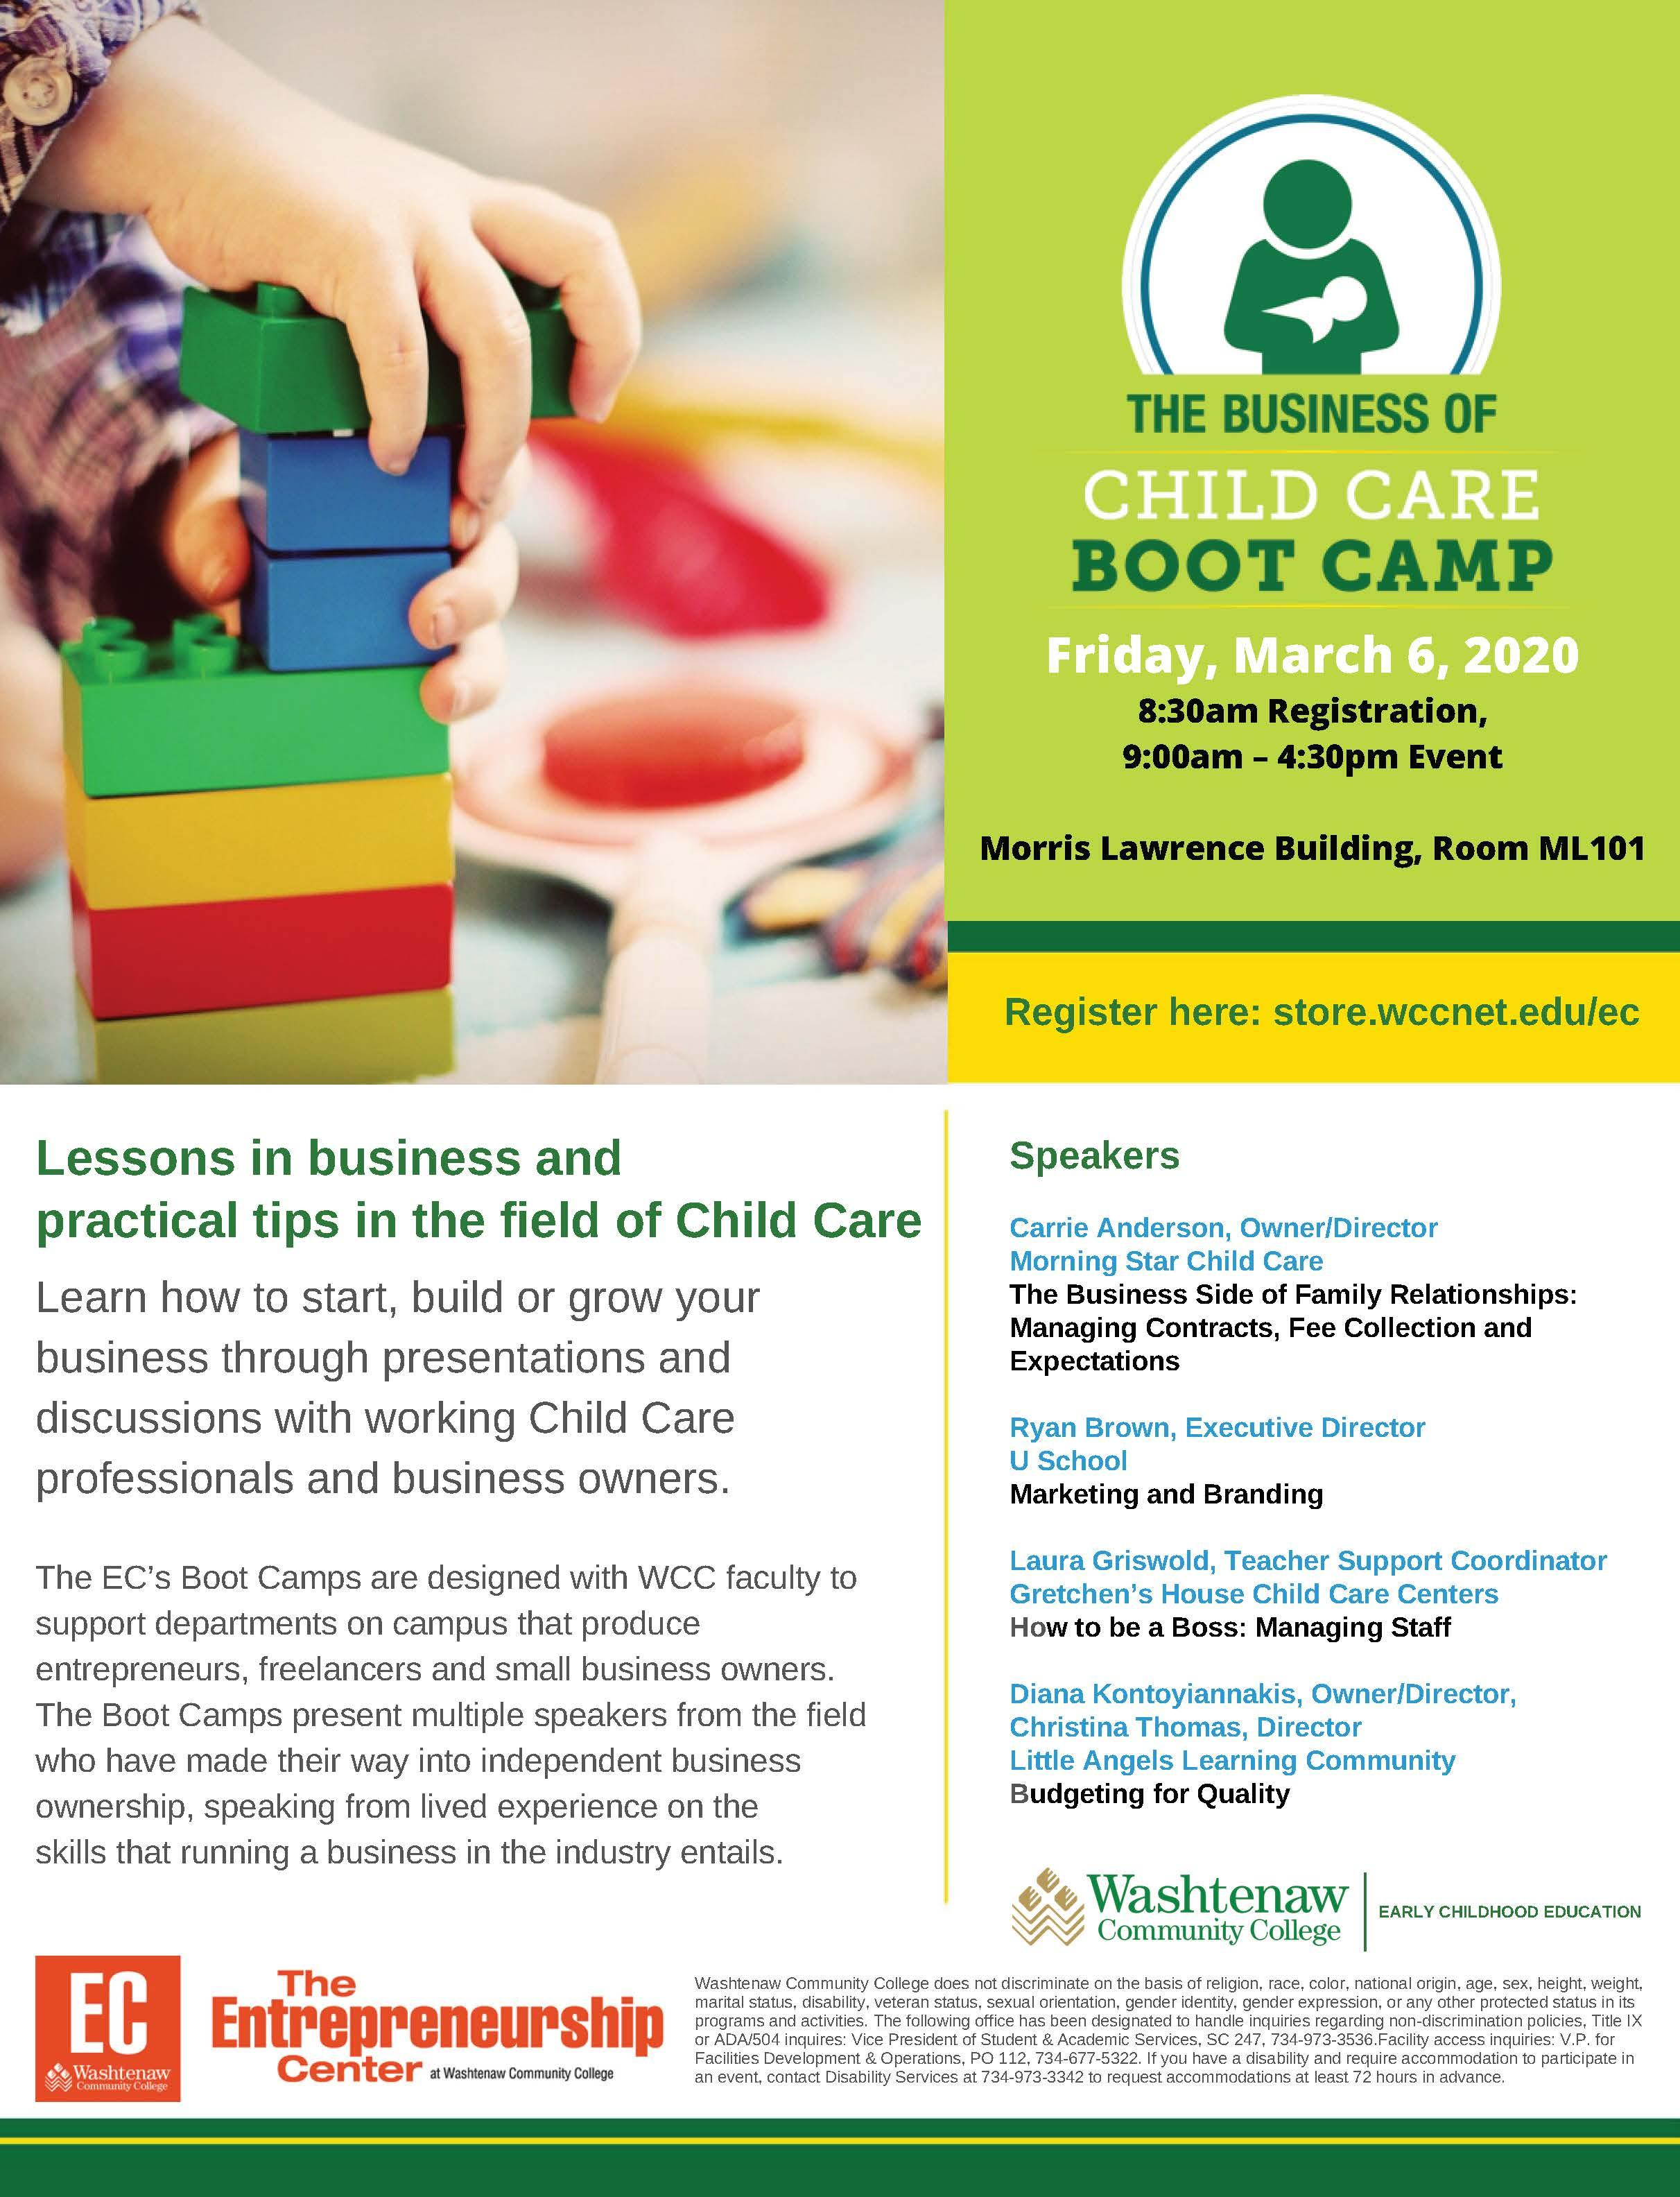 The Business of Child Care Boot Camp